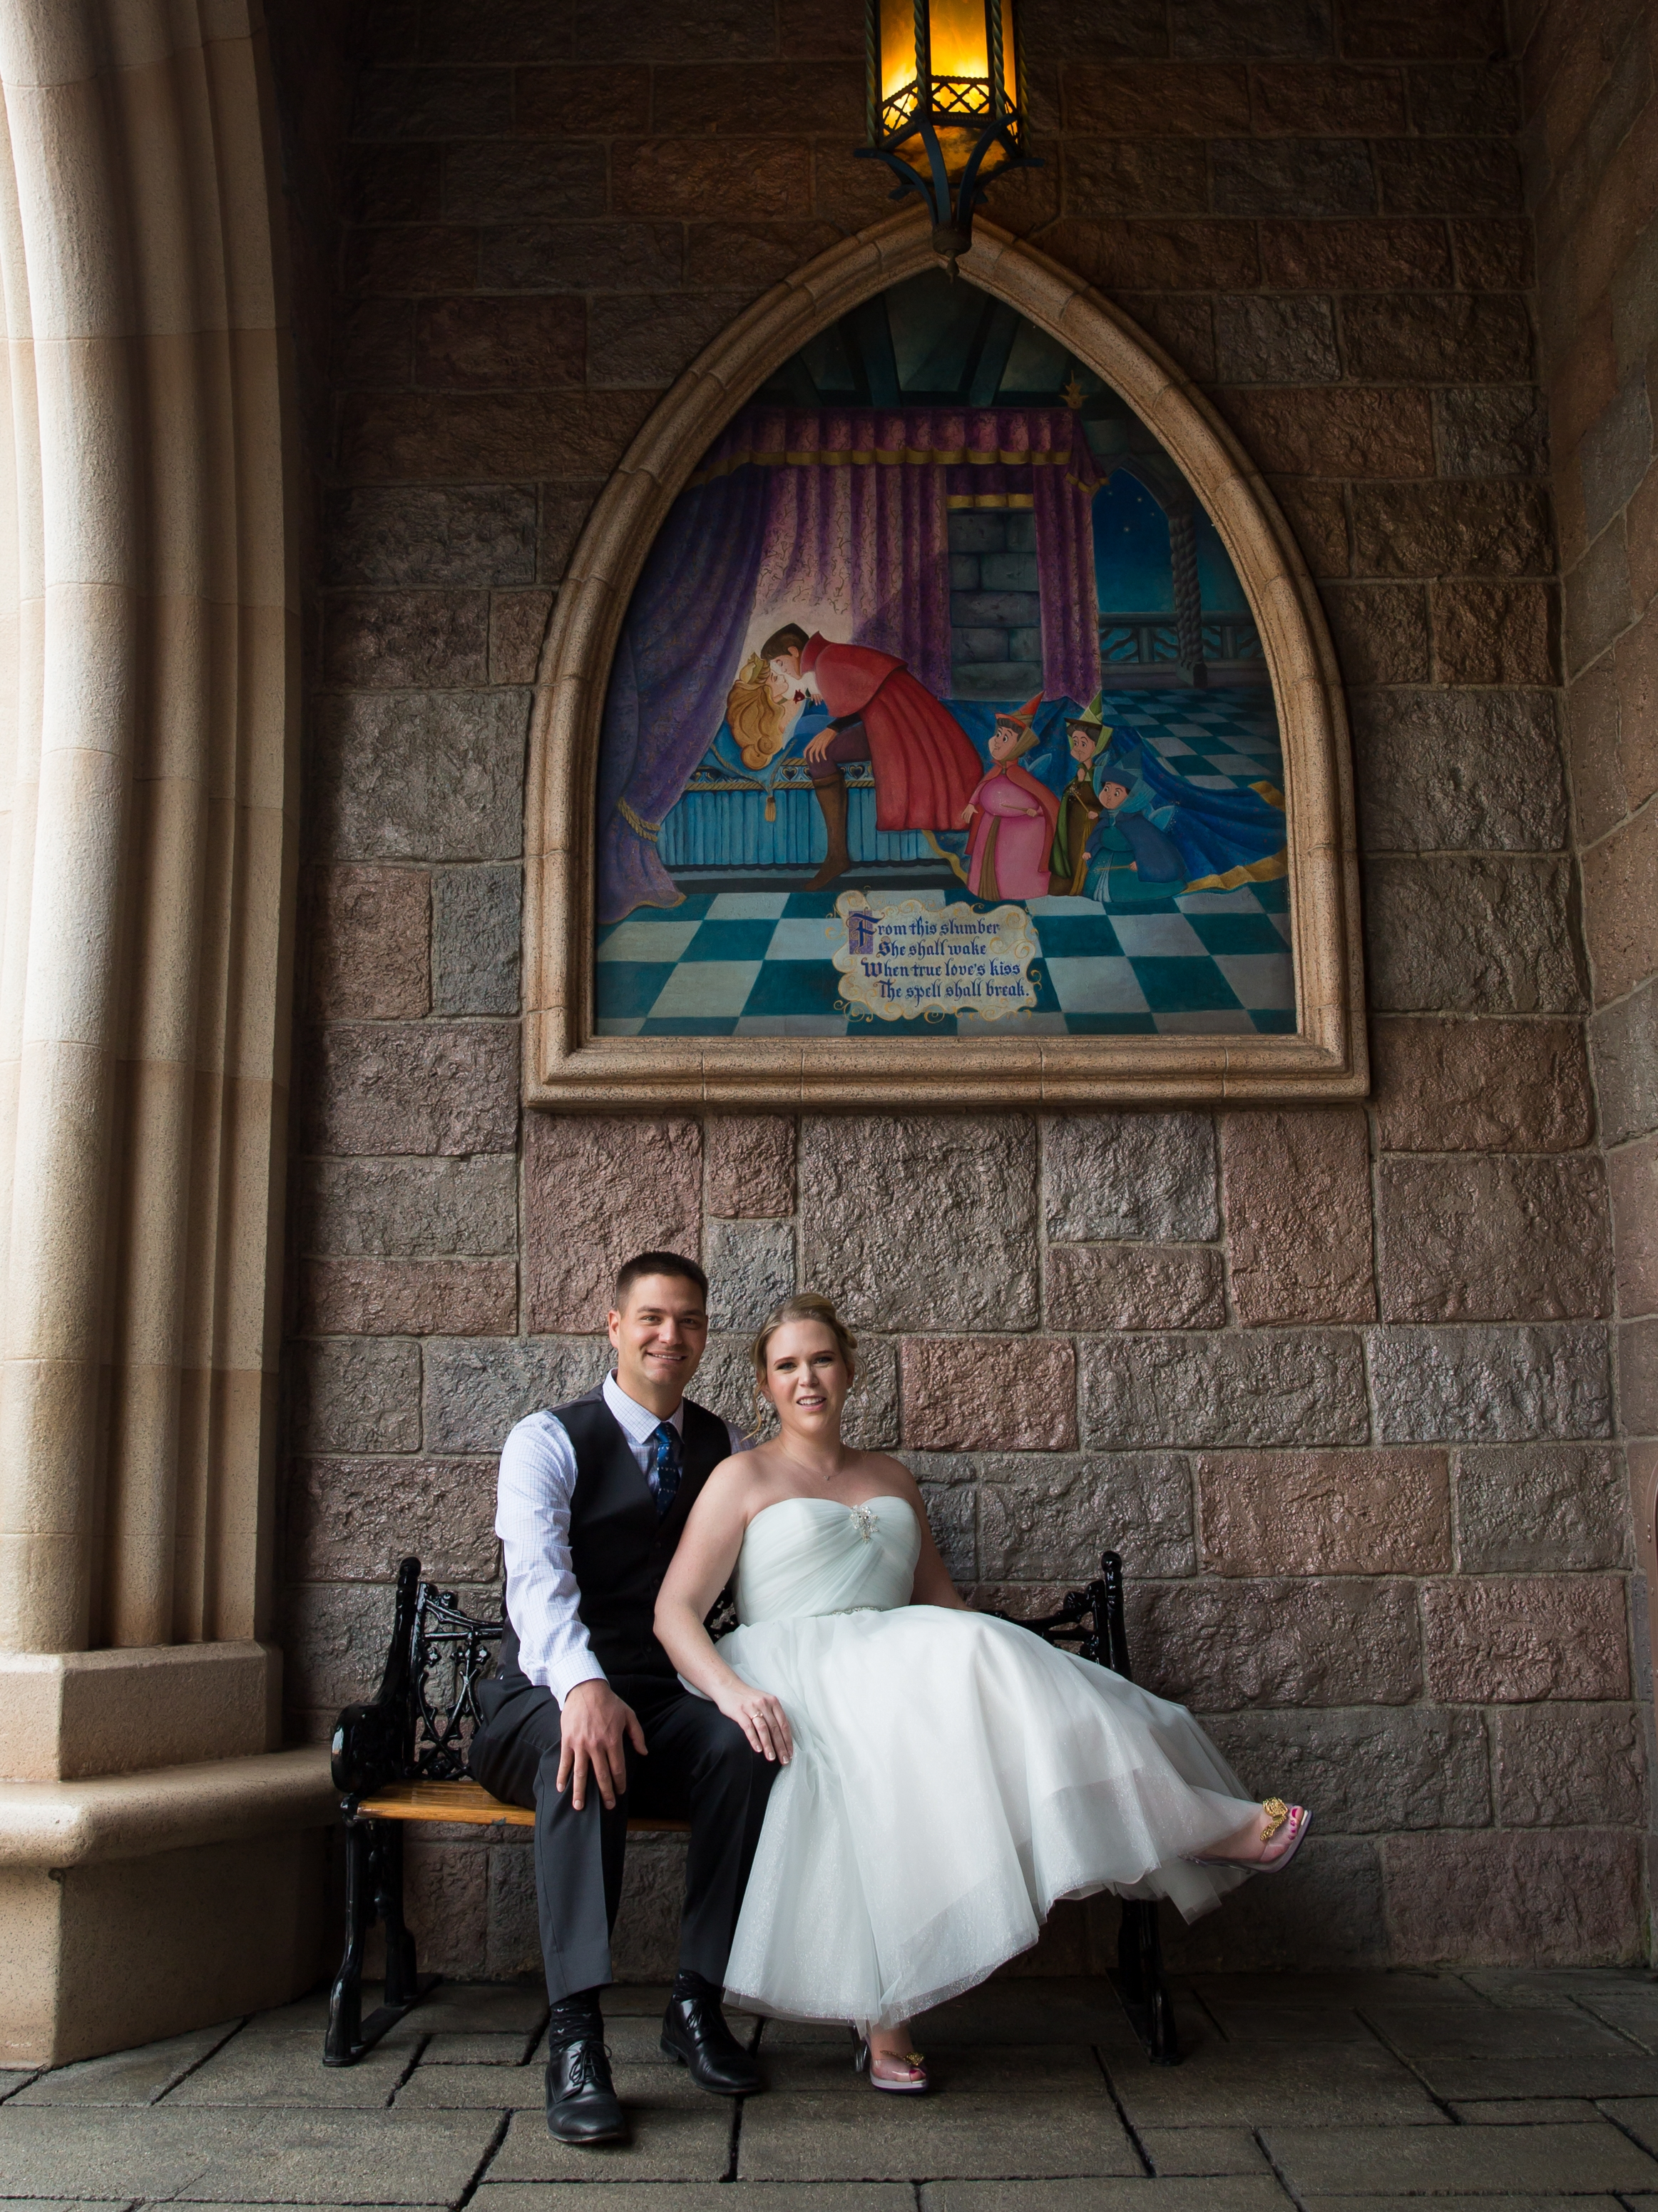 Julie with her husband in Sleeping Beauty's Castle at Disneyland.